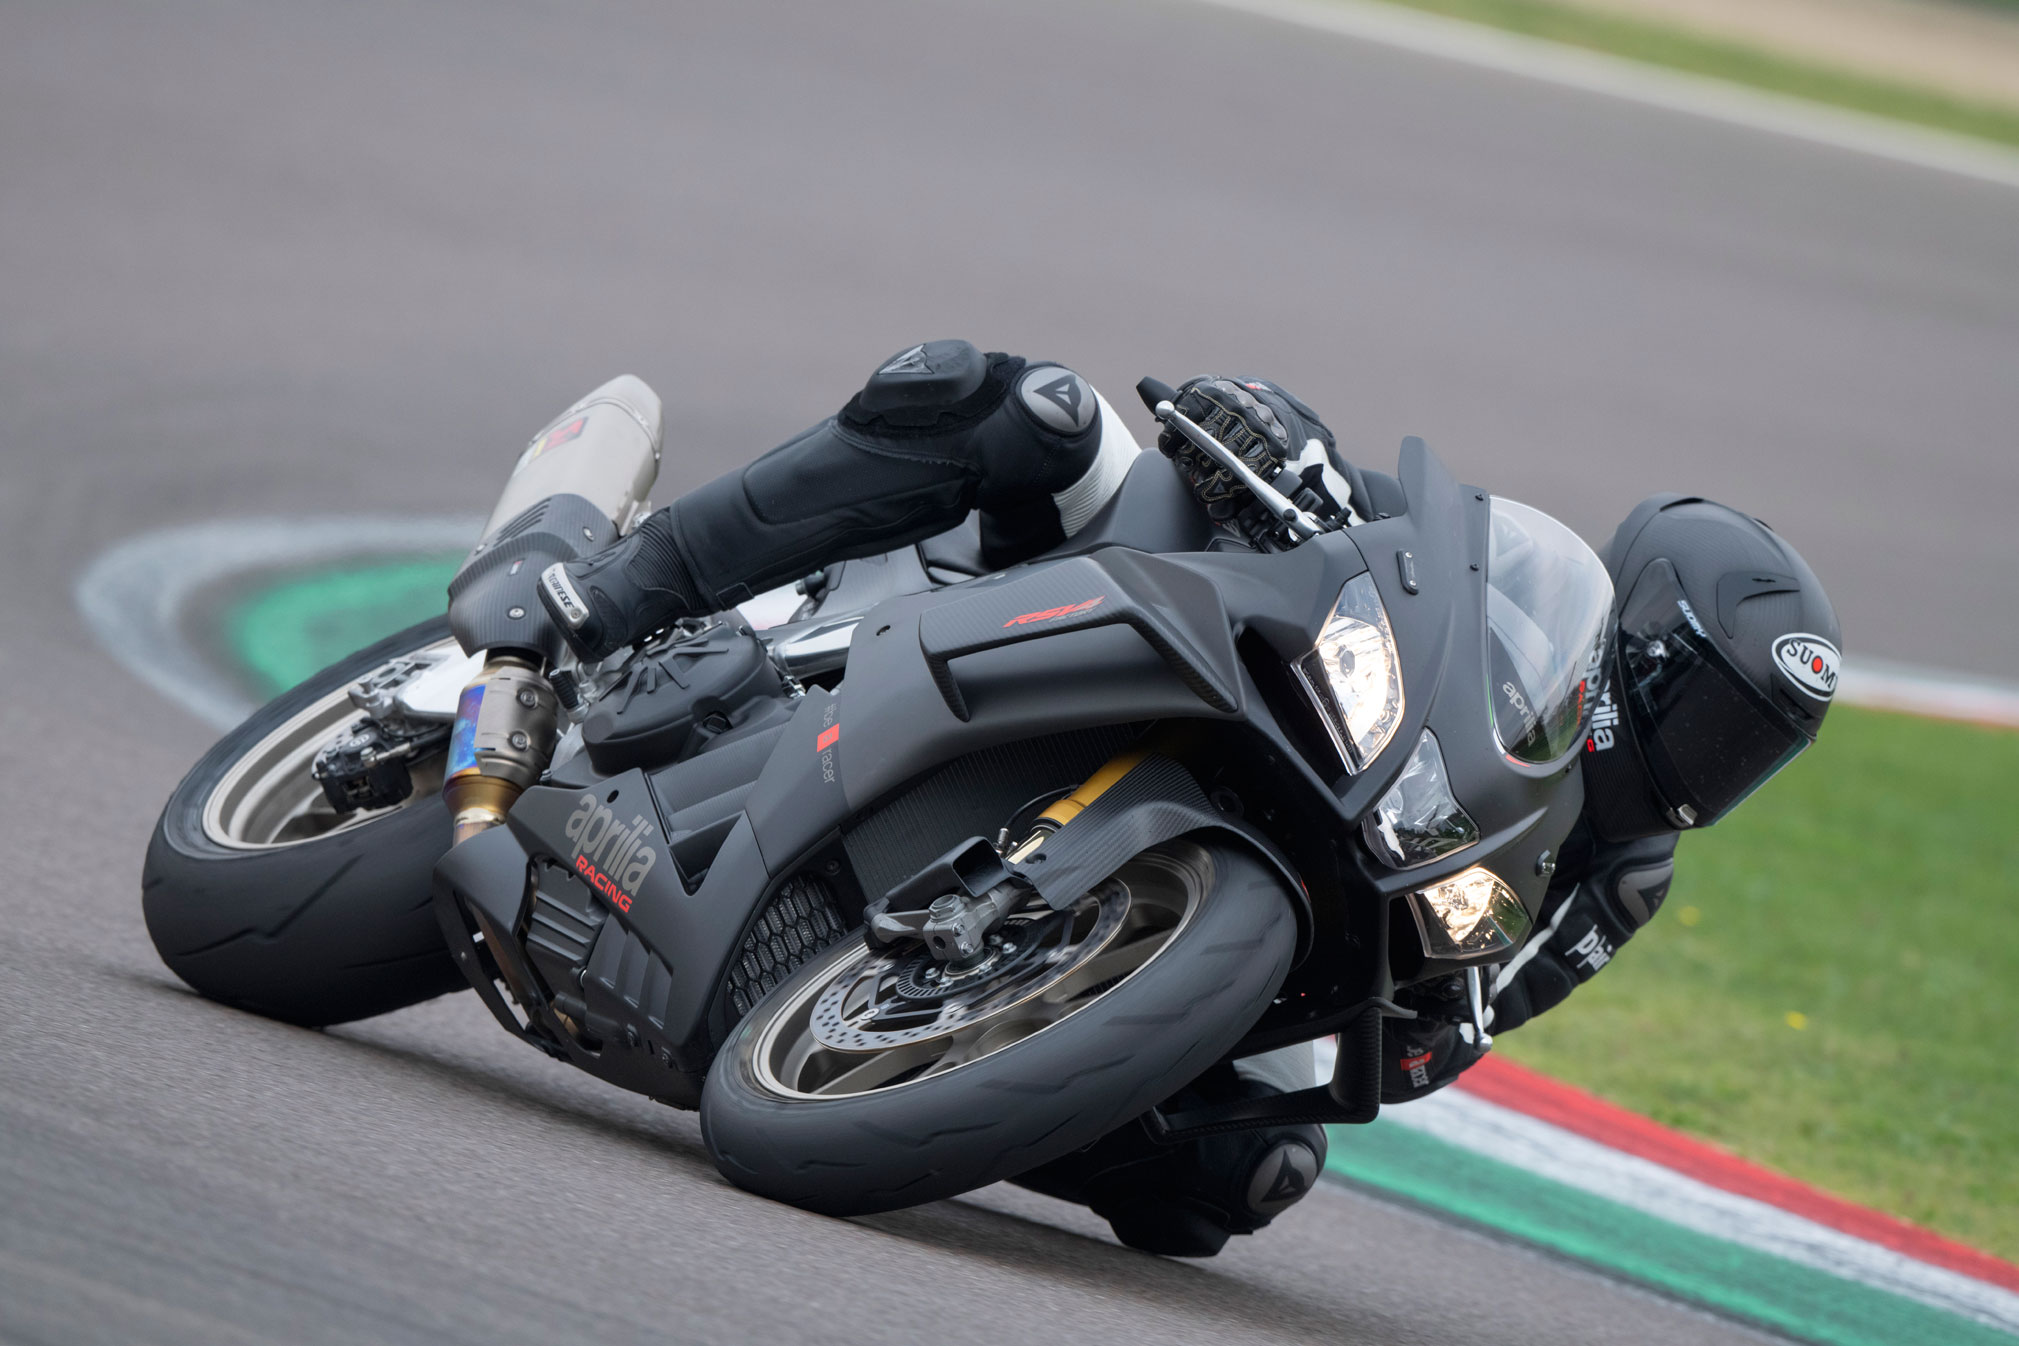 2019 aprilia rsv4 rr factory 1000 guide totalmotorcycle. Black Bedroom Furniture Sets. Home Design Ideas